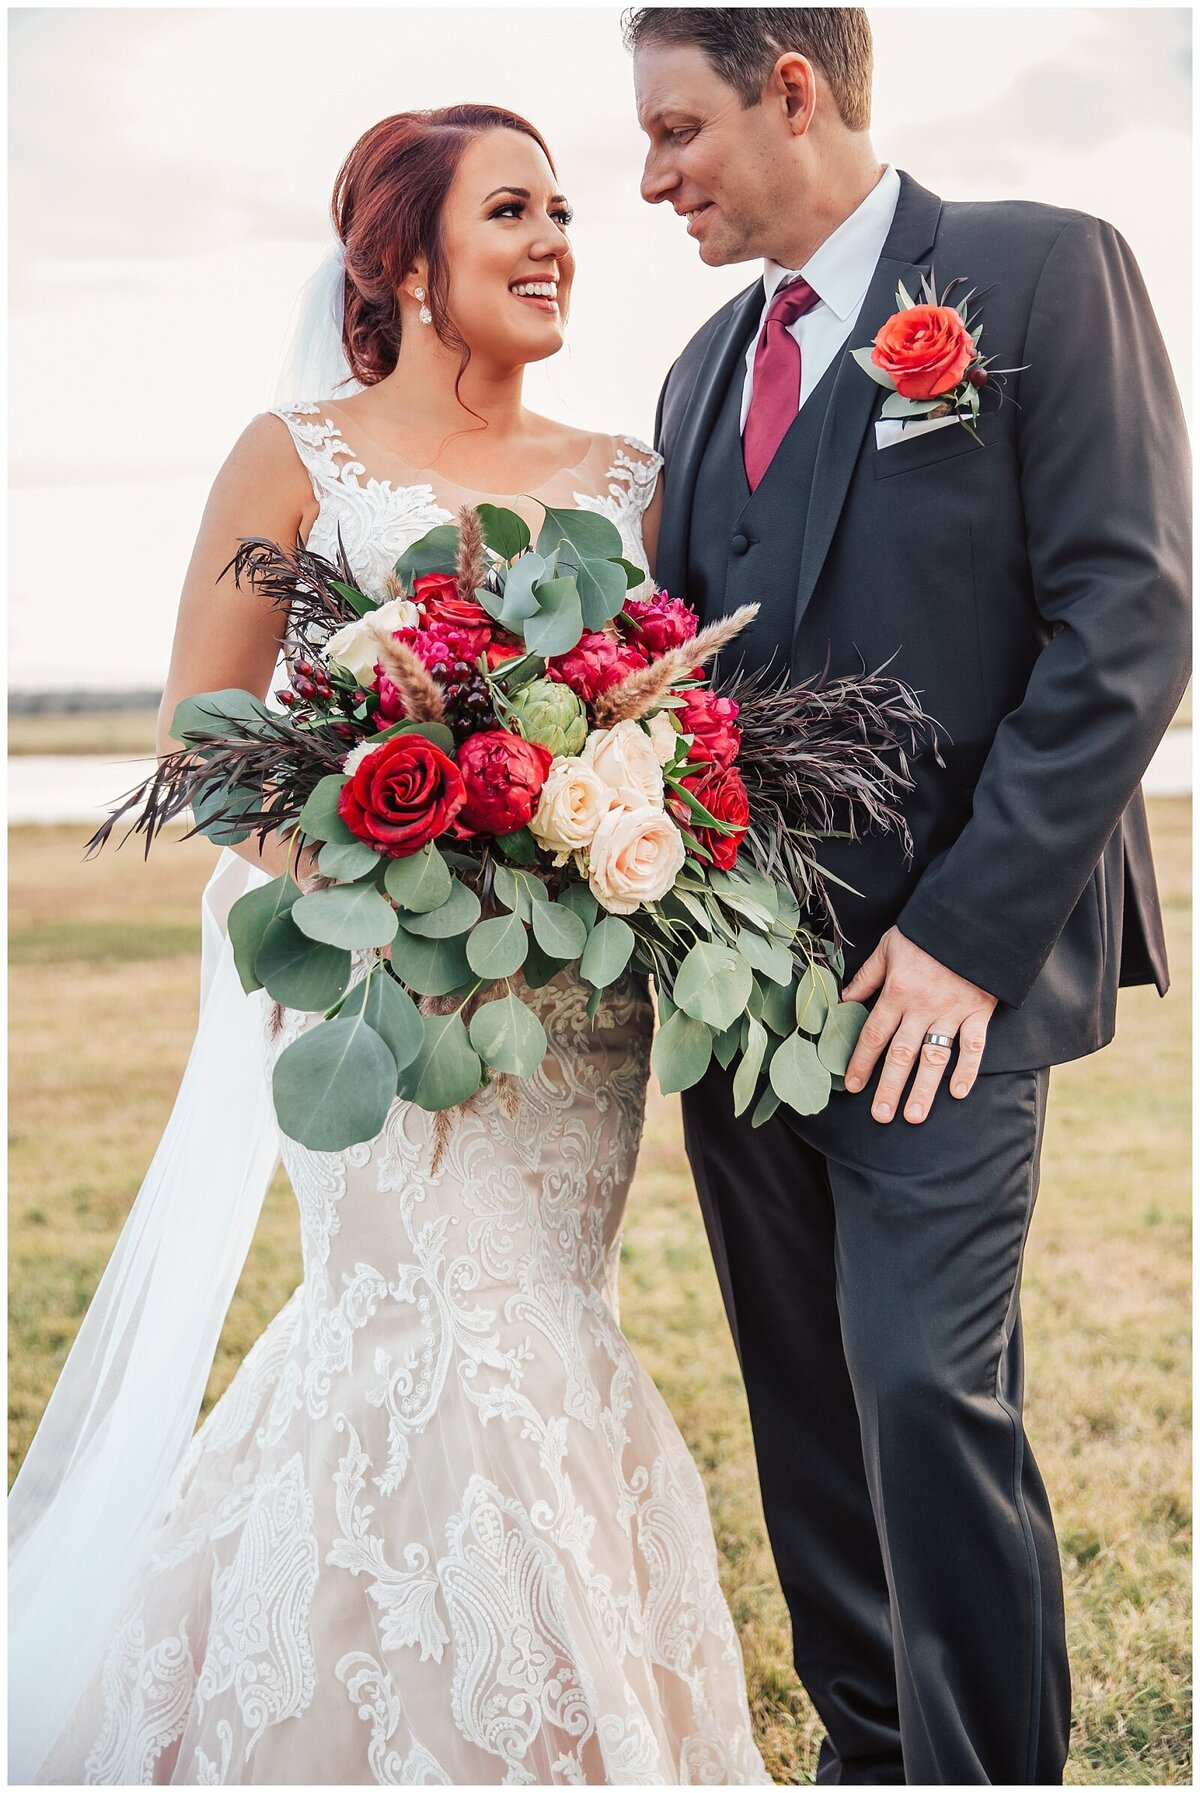 Rustic Burgundy and Blush Indoor Outdoor Wedding at Emery's Buffalo Creek - Houston Wedding Venue_0686